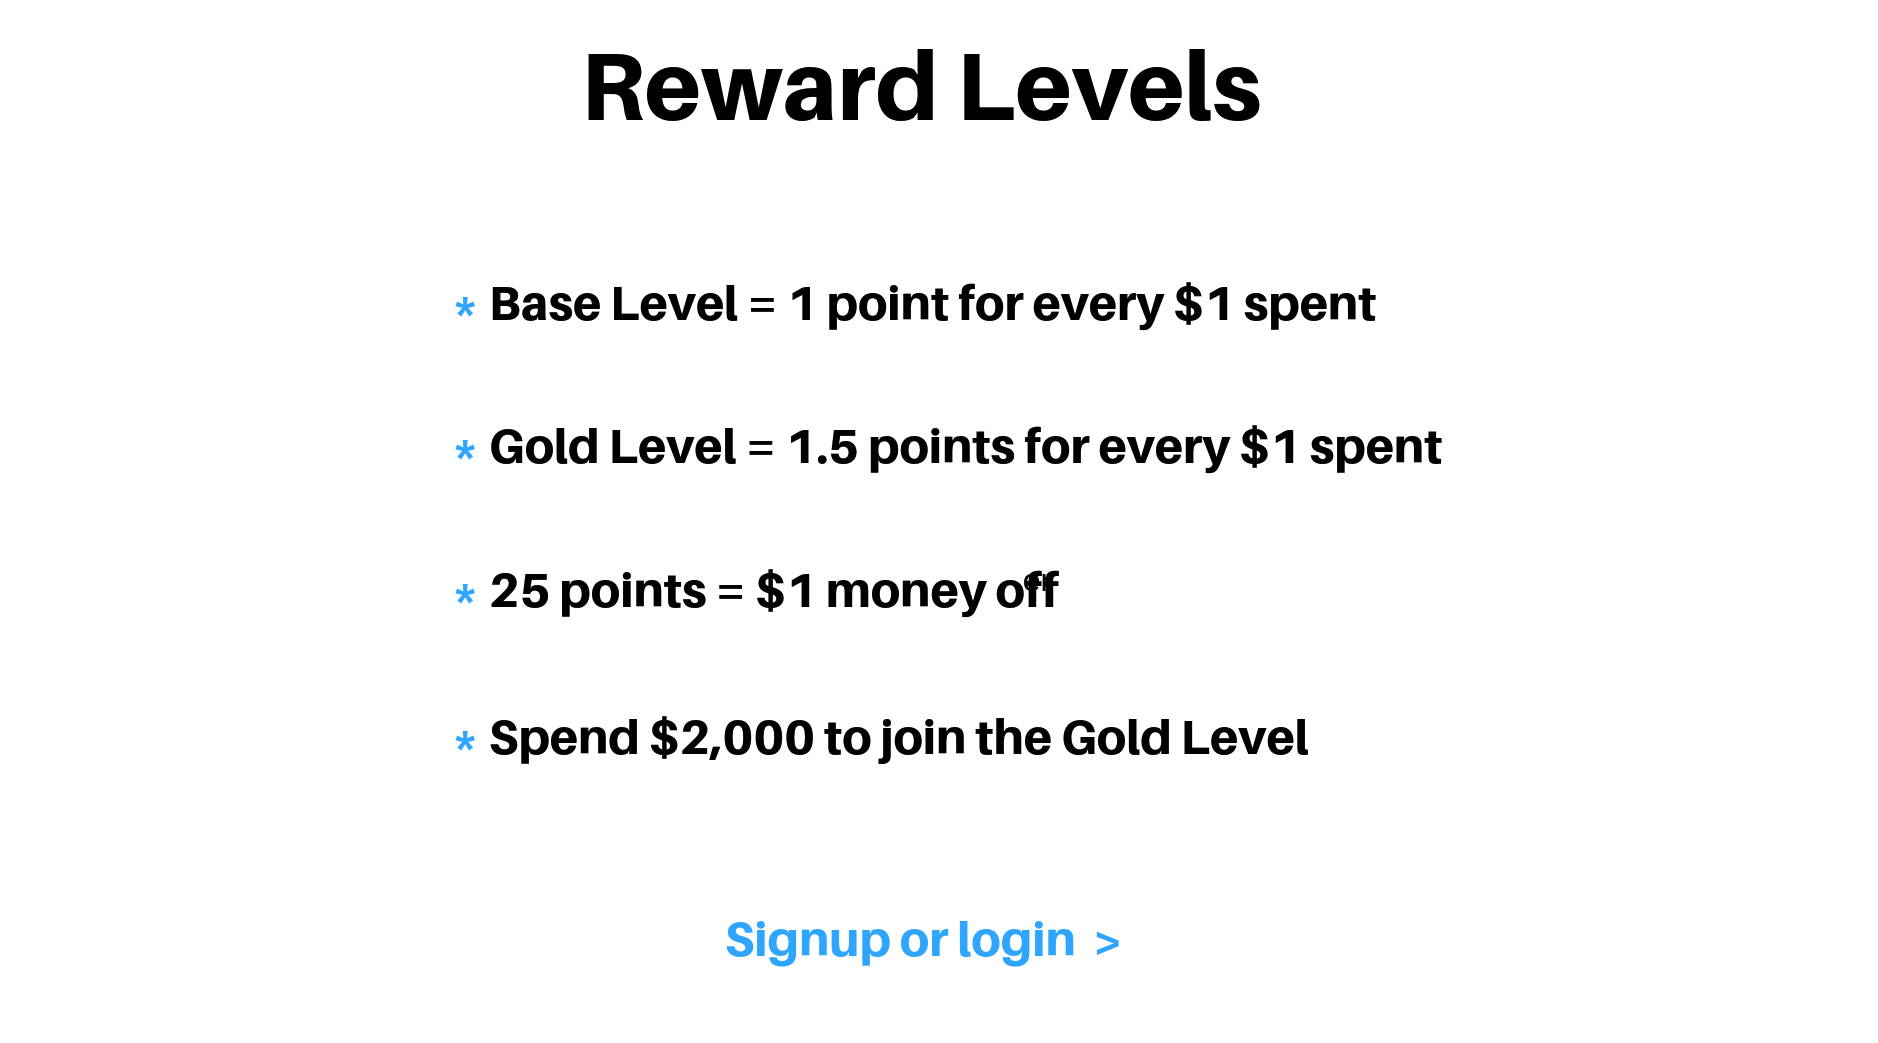 Reward Levels. Base Level = 1 point for every $1 spent. Gold Level = 1.5 points for every $1 spent. 25 points = $1 money off. Spend $2,000 to join the Gold Level. Signup or Login.